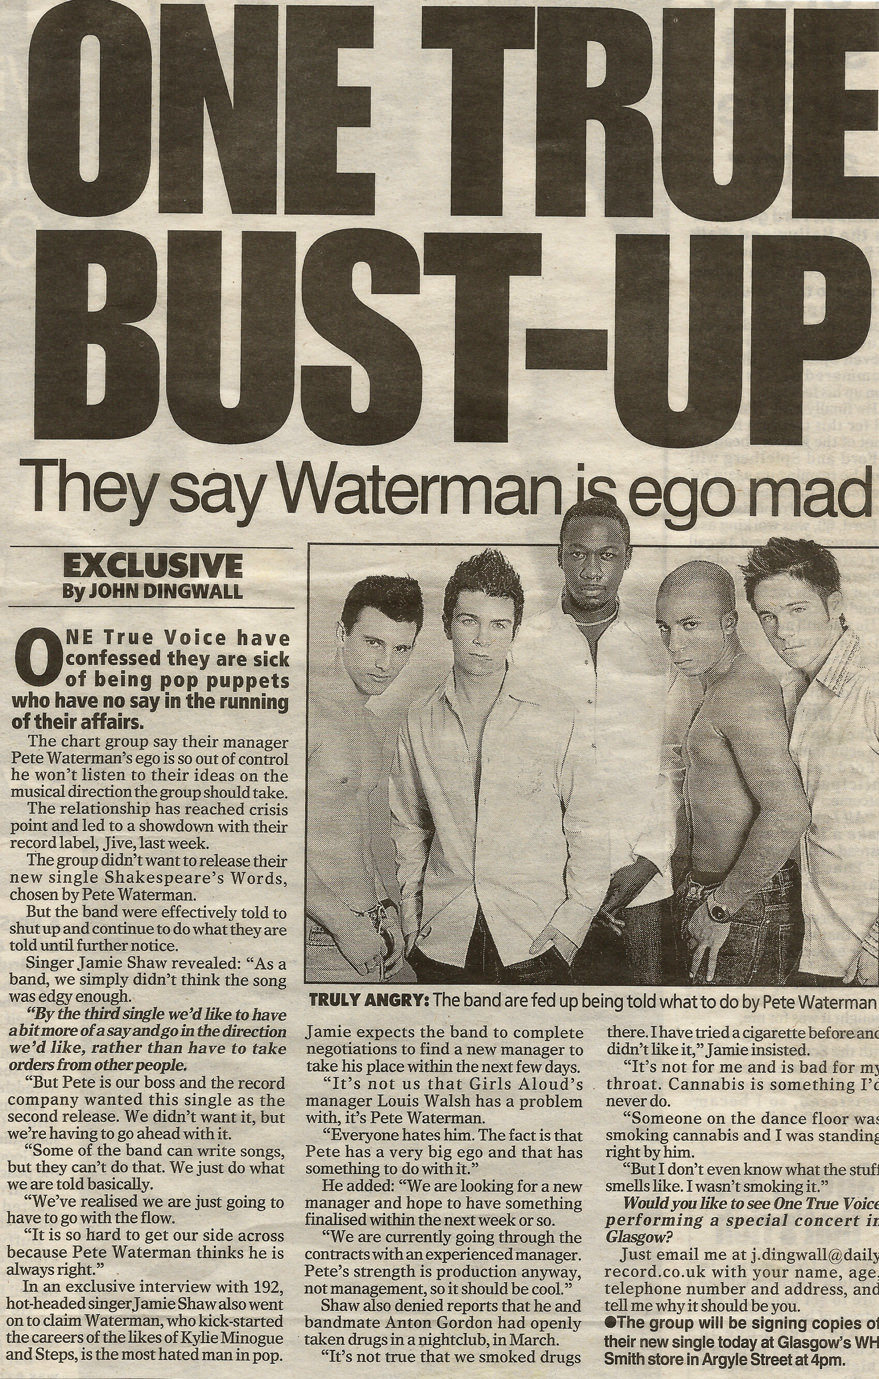 One True Voice bust up press article